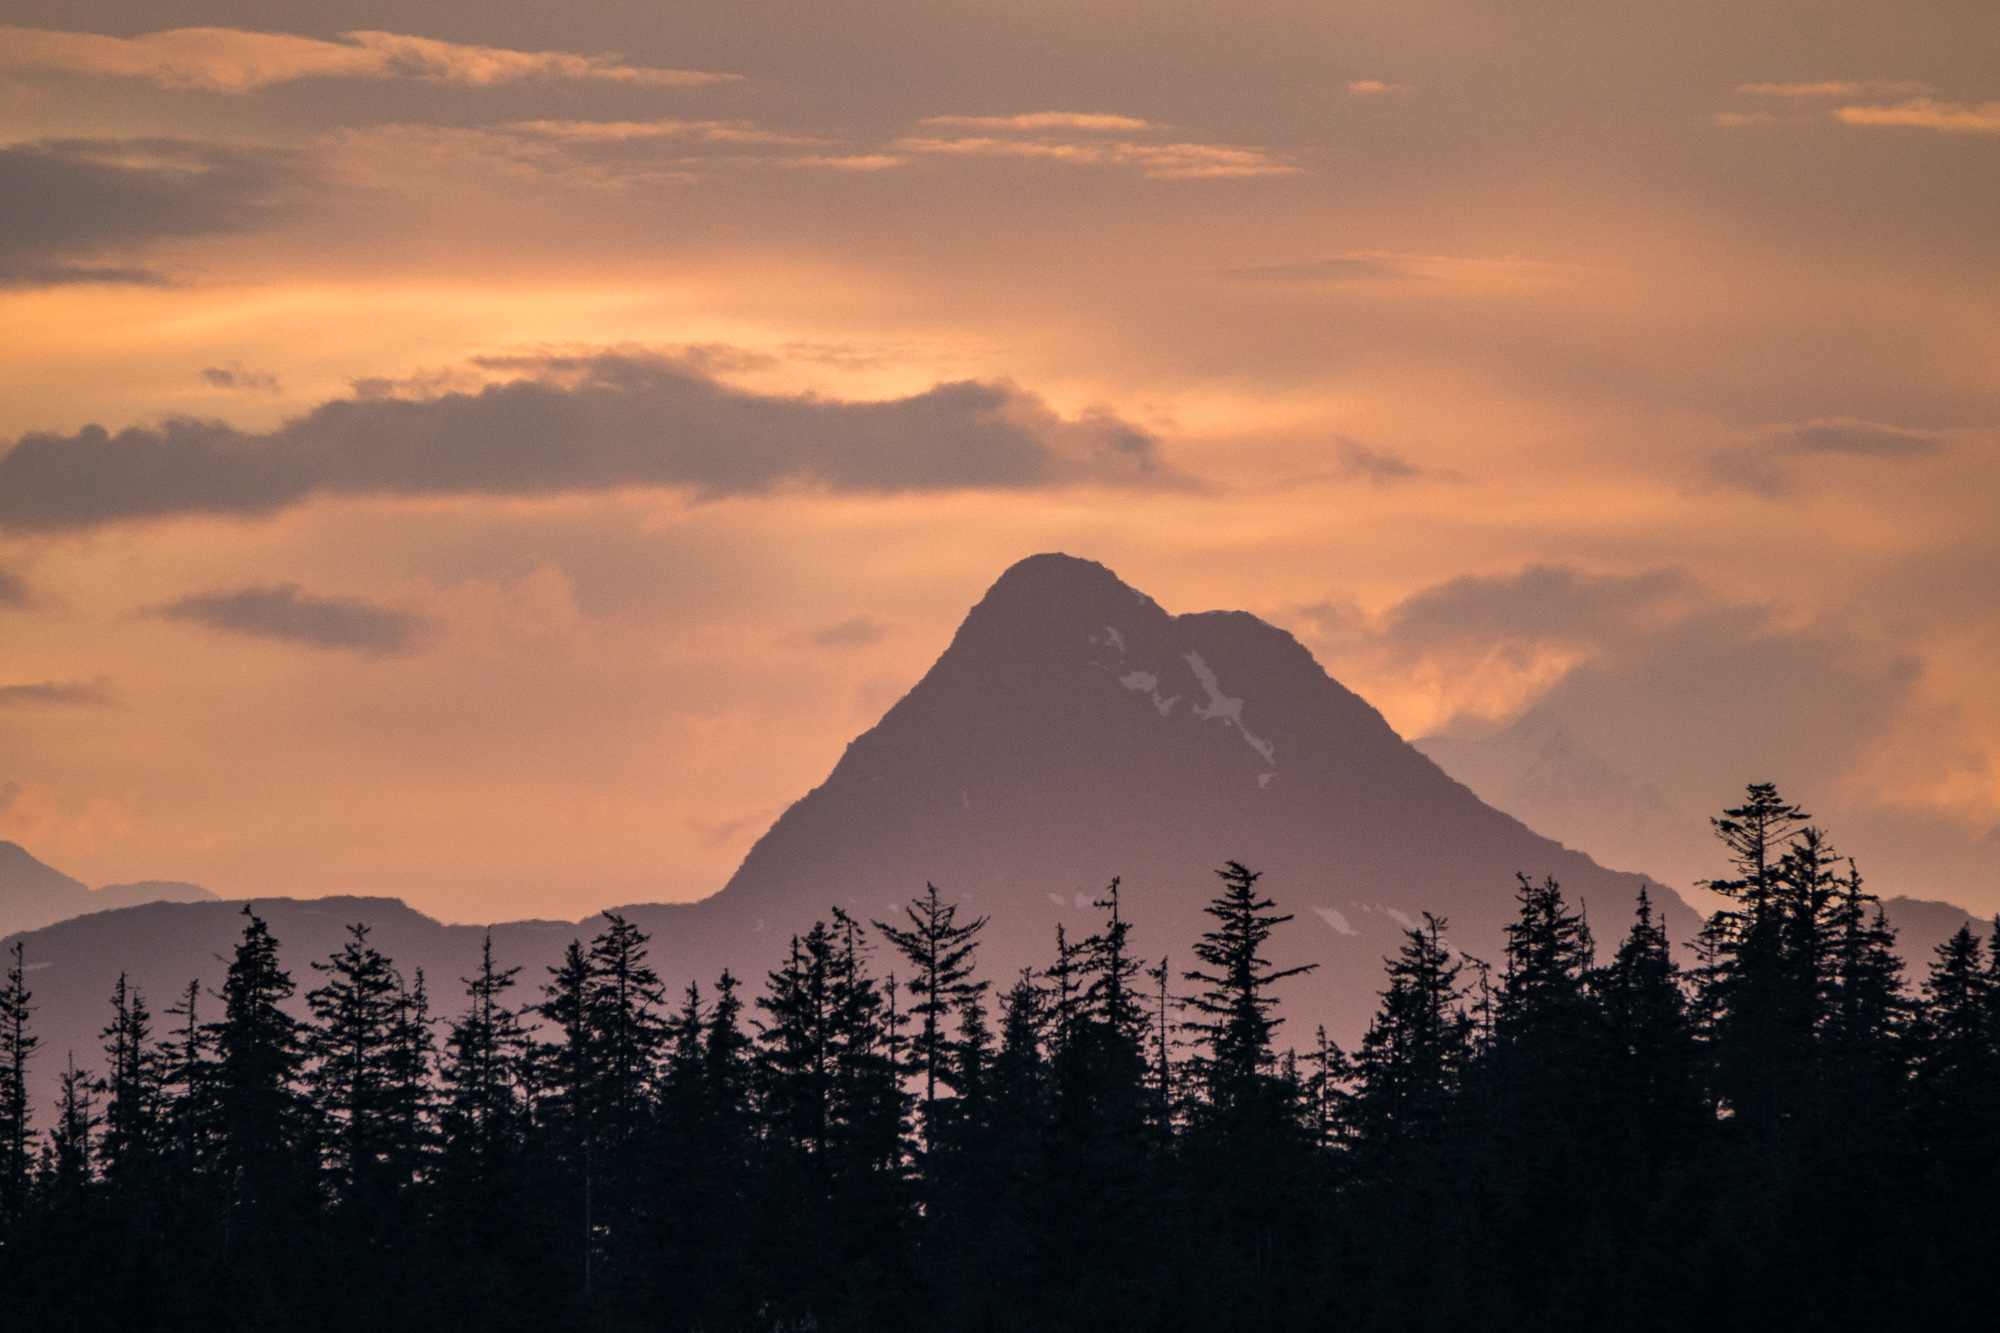 We saw some great sunsets from the Glacier Bay Lodge in the heart of the park.